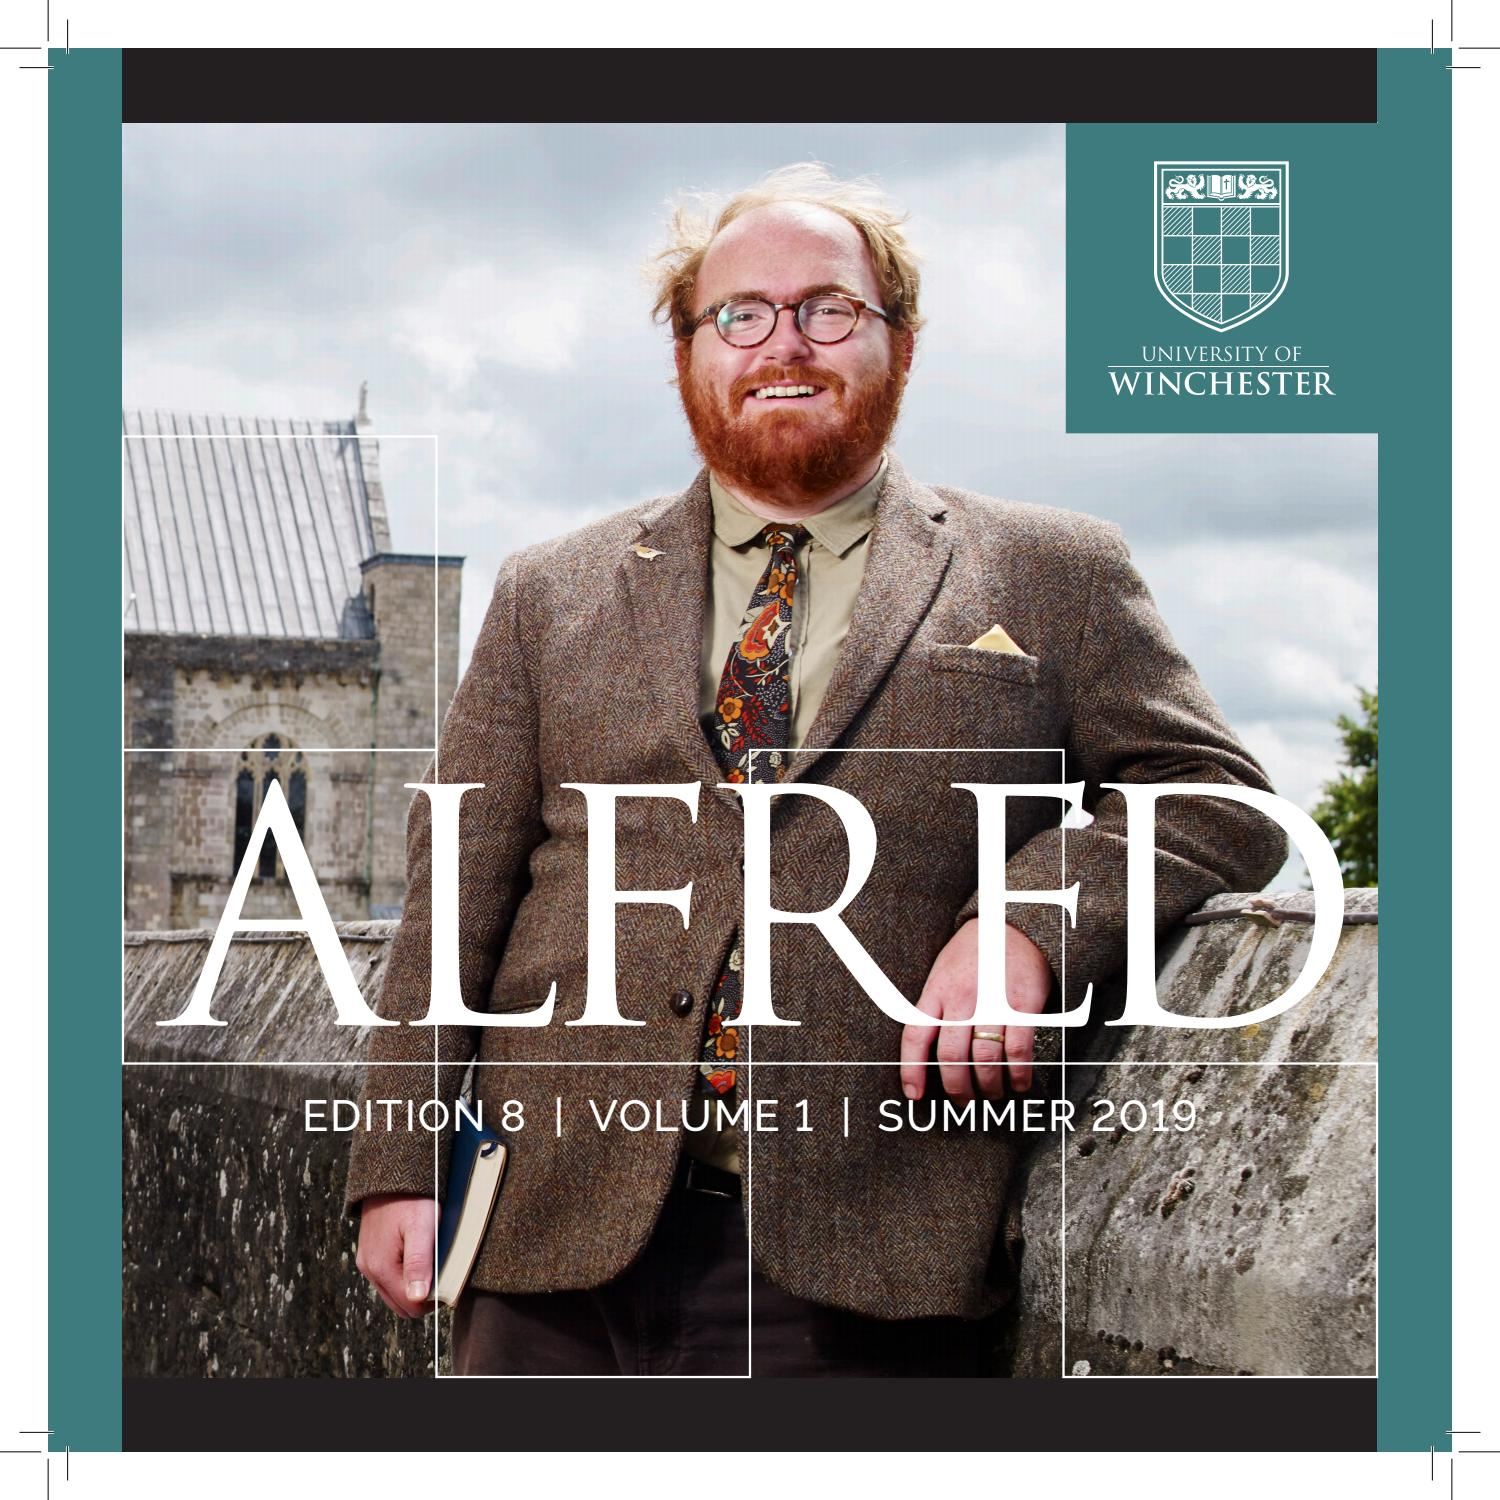 ALFRED 2019 Edition 8 Vol  1 by University of Winchester - issuu